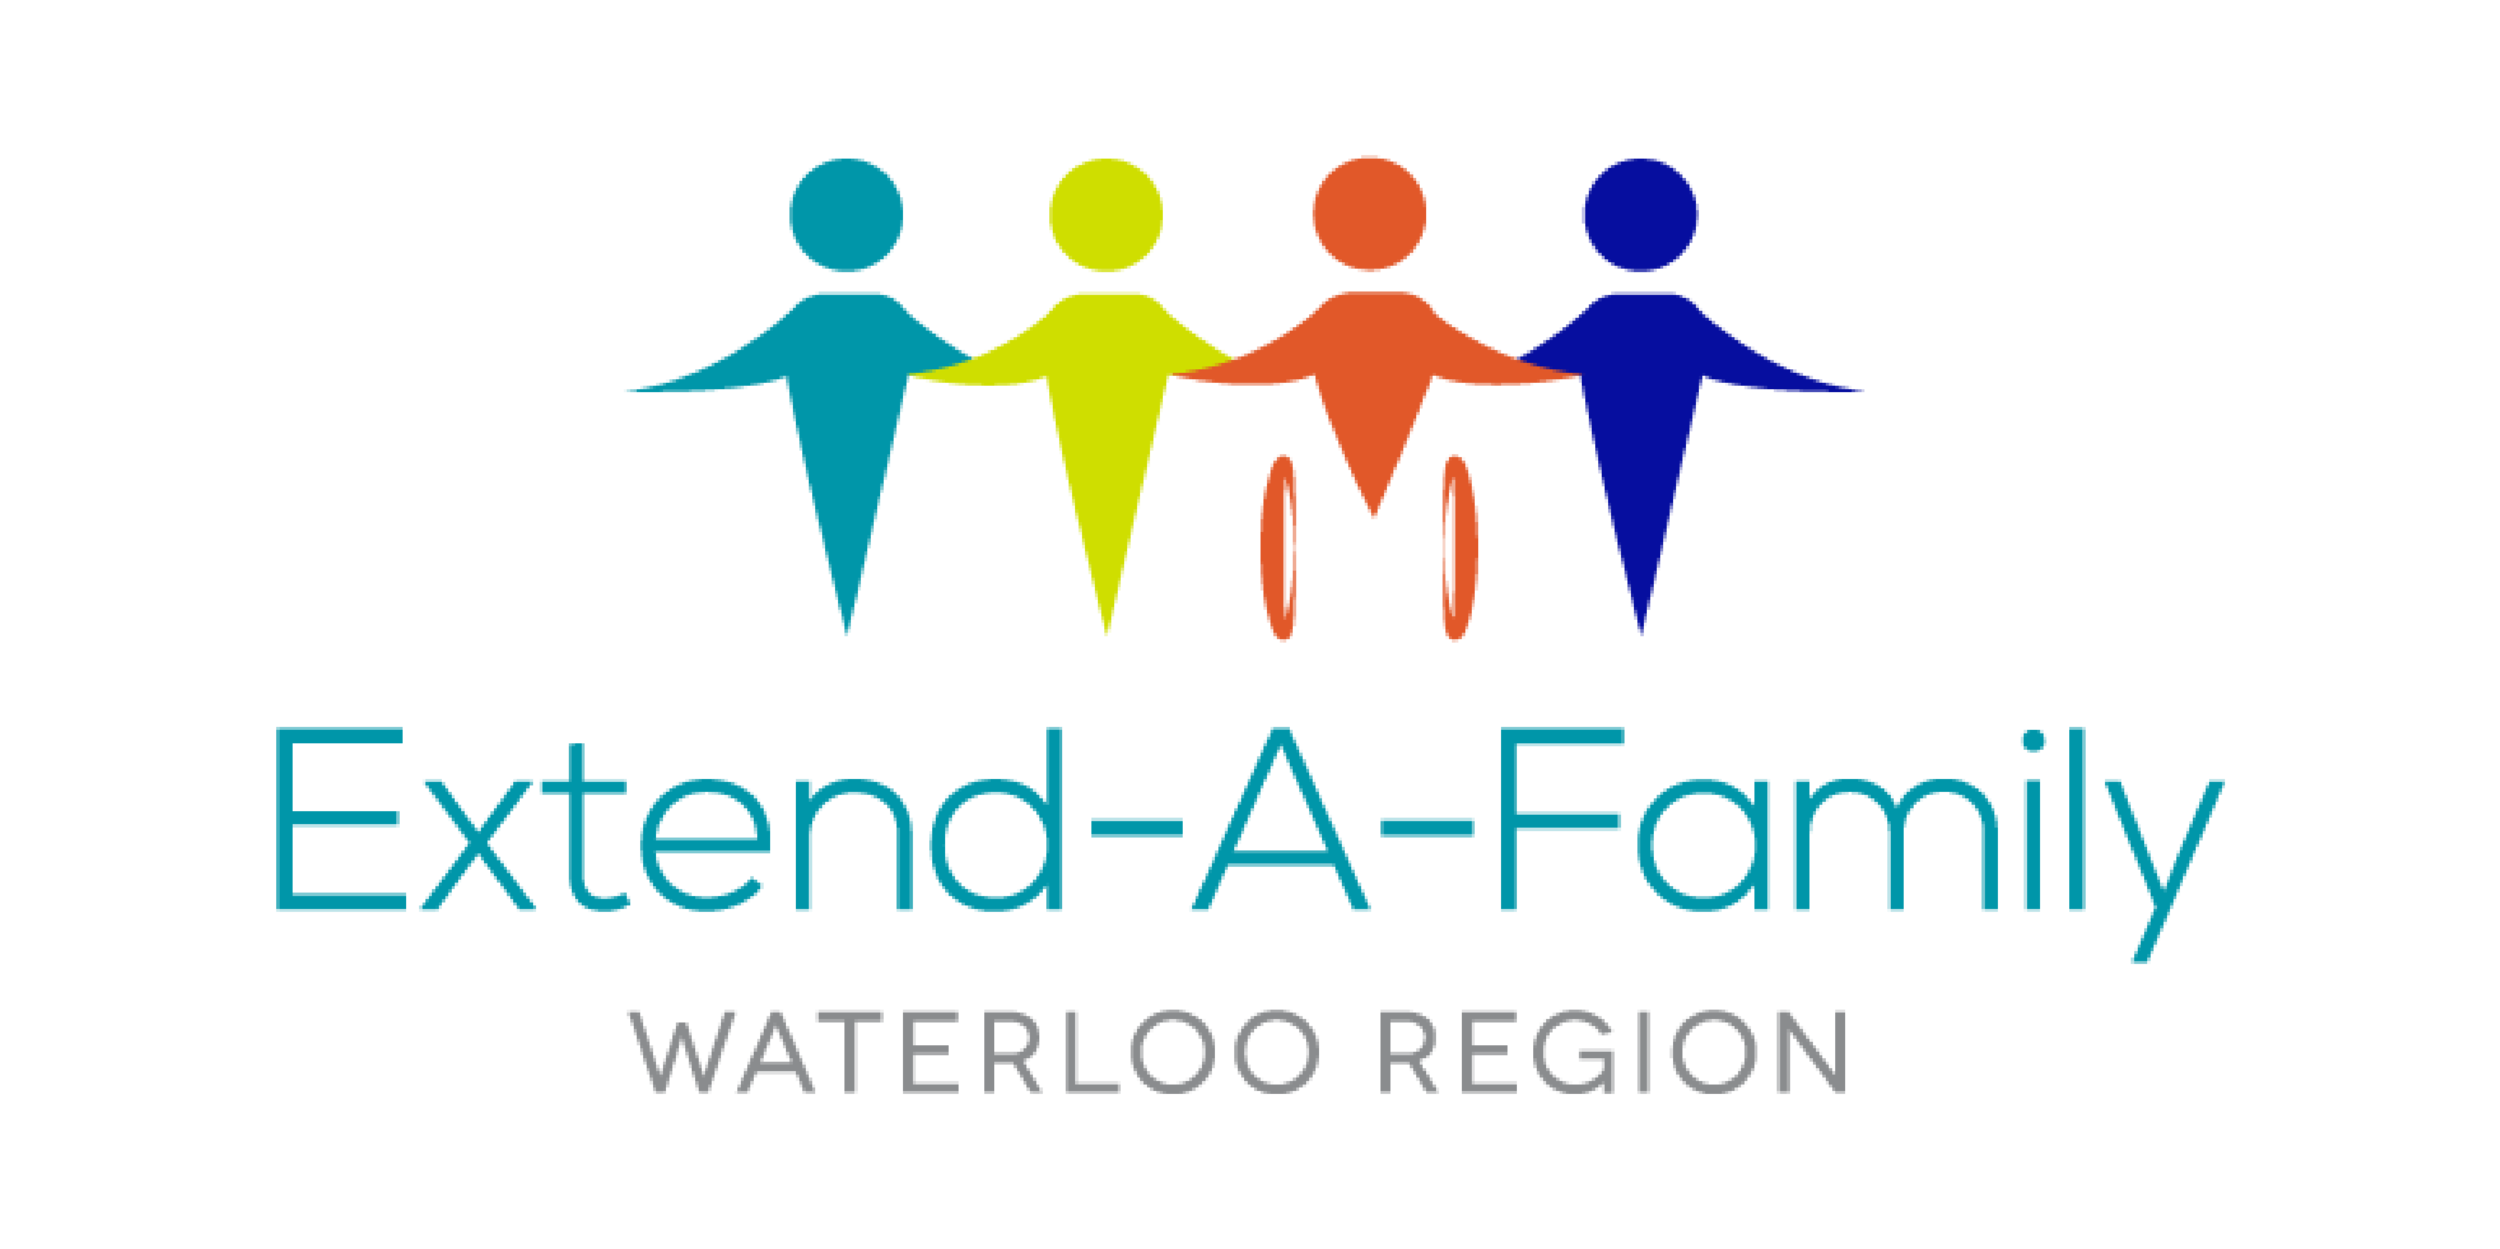 Extend a Family-logo-02.png